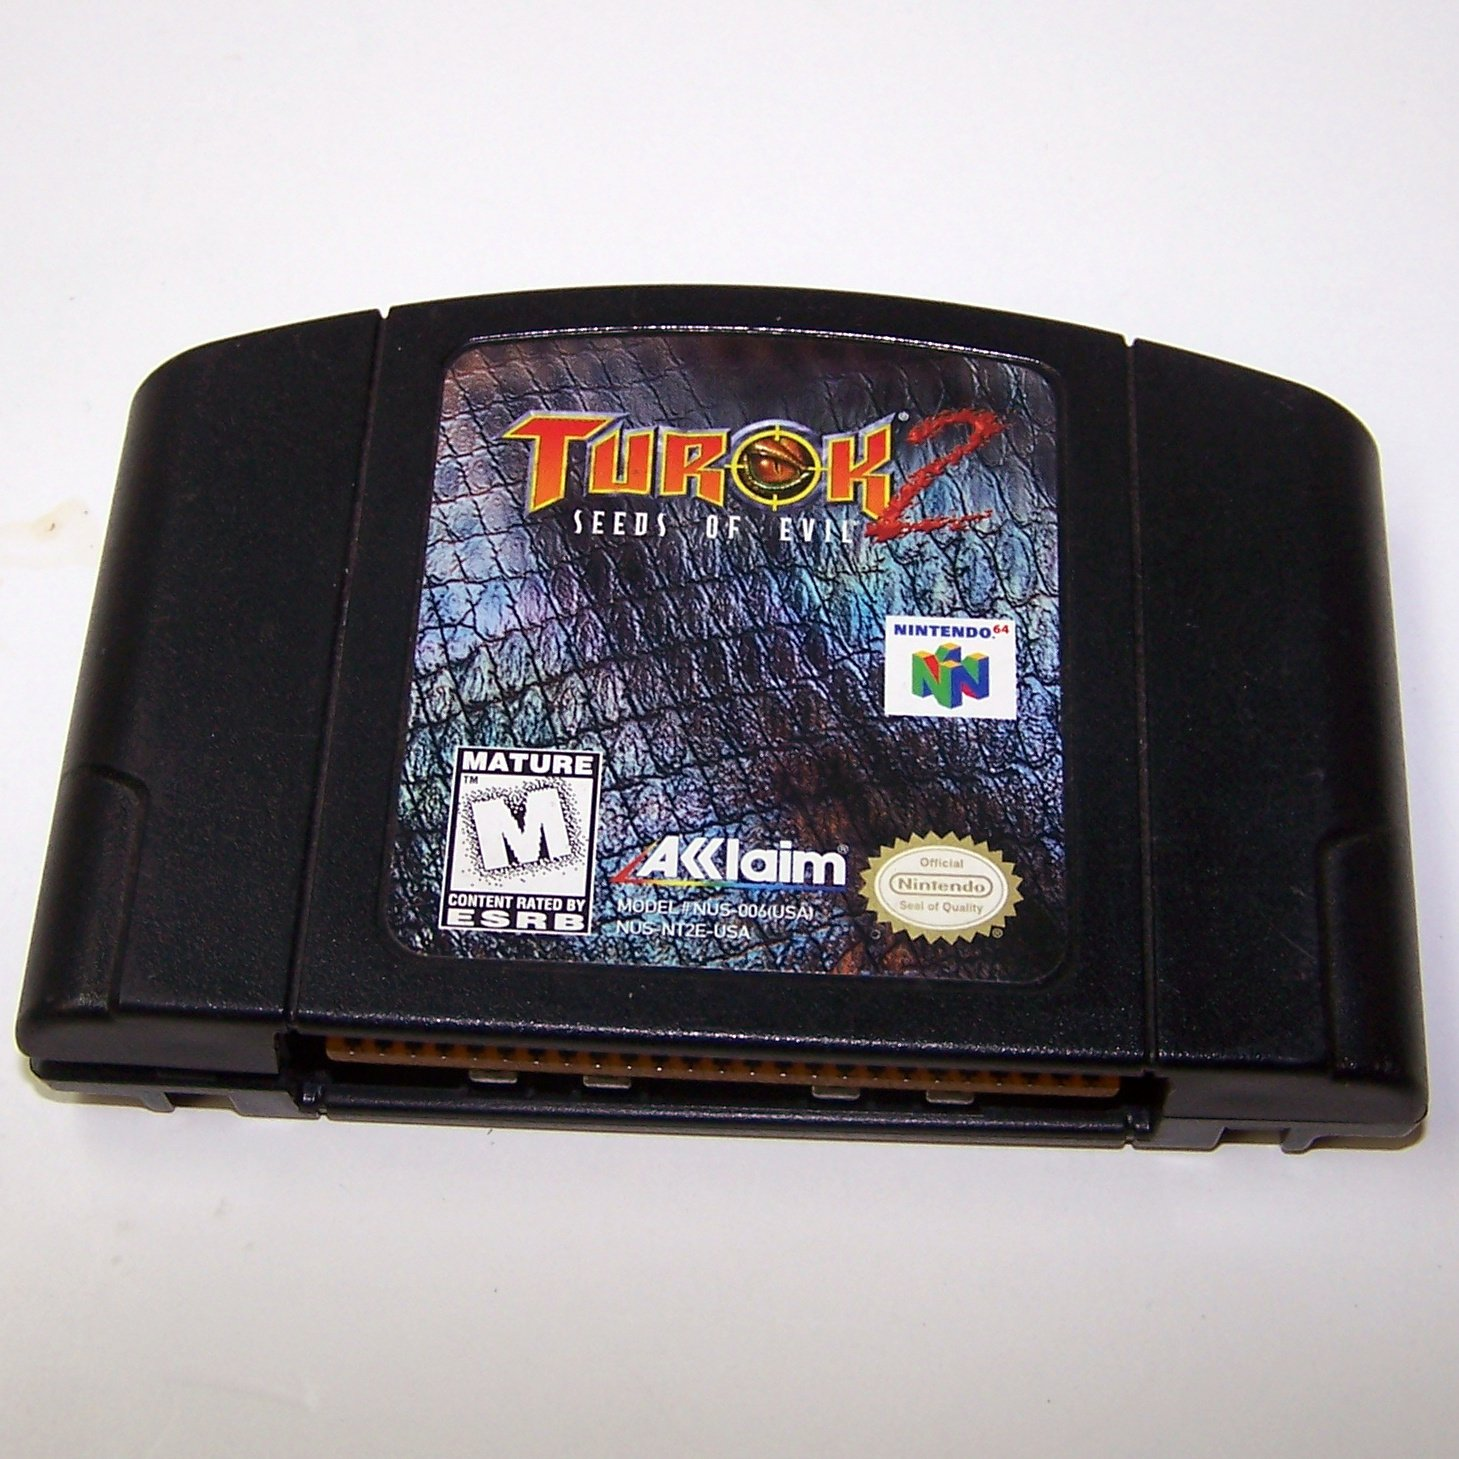 Turok 2 Seeds of Evil N64 Nintendo 64 Game Cartridge